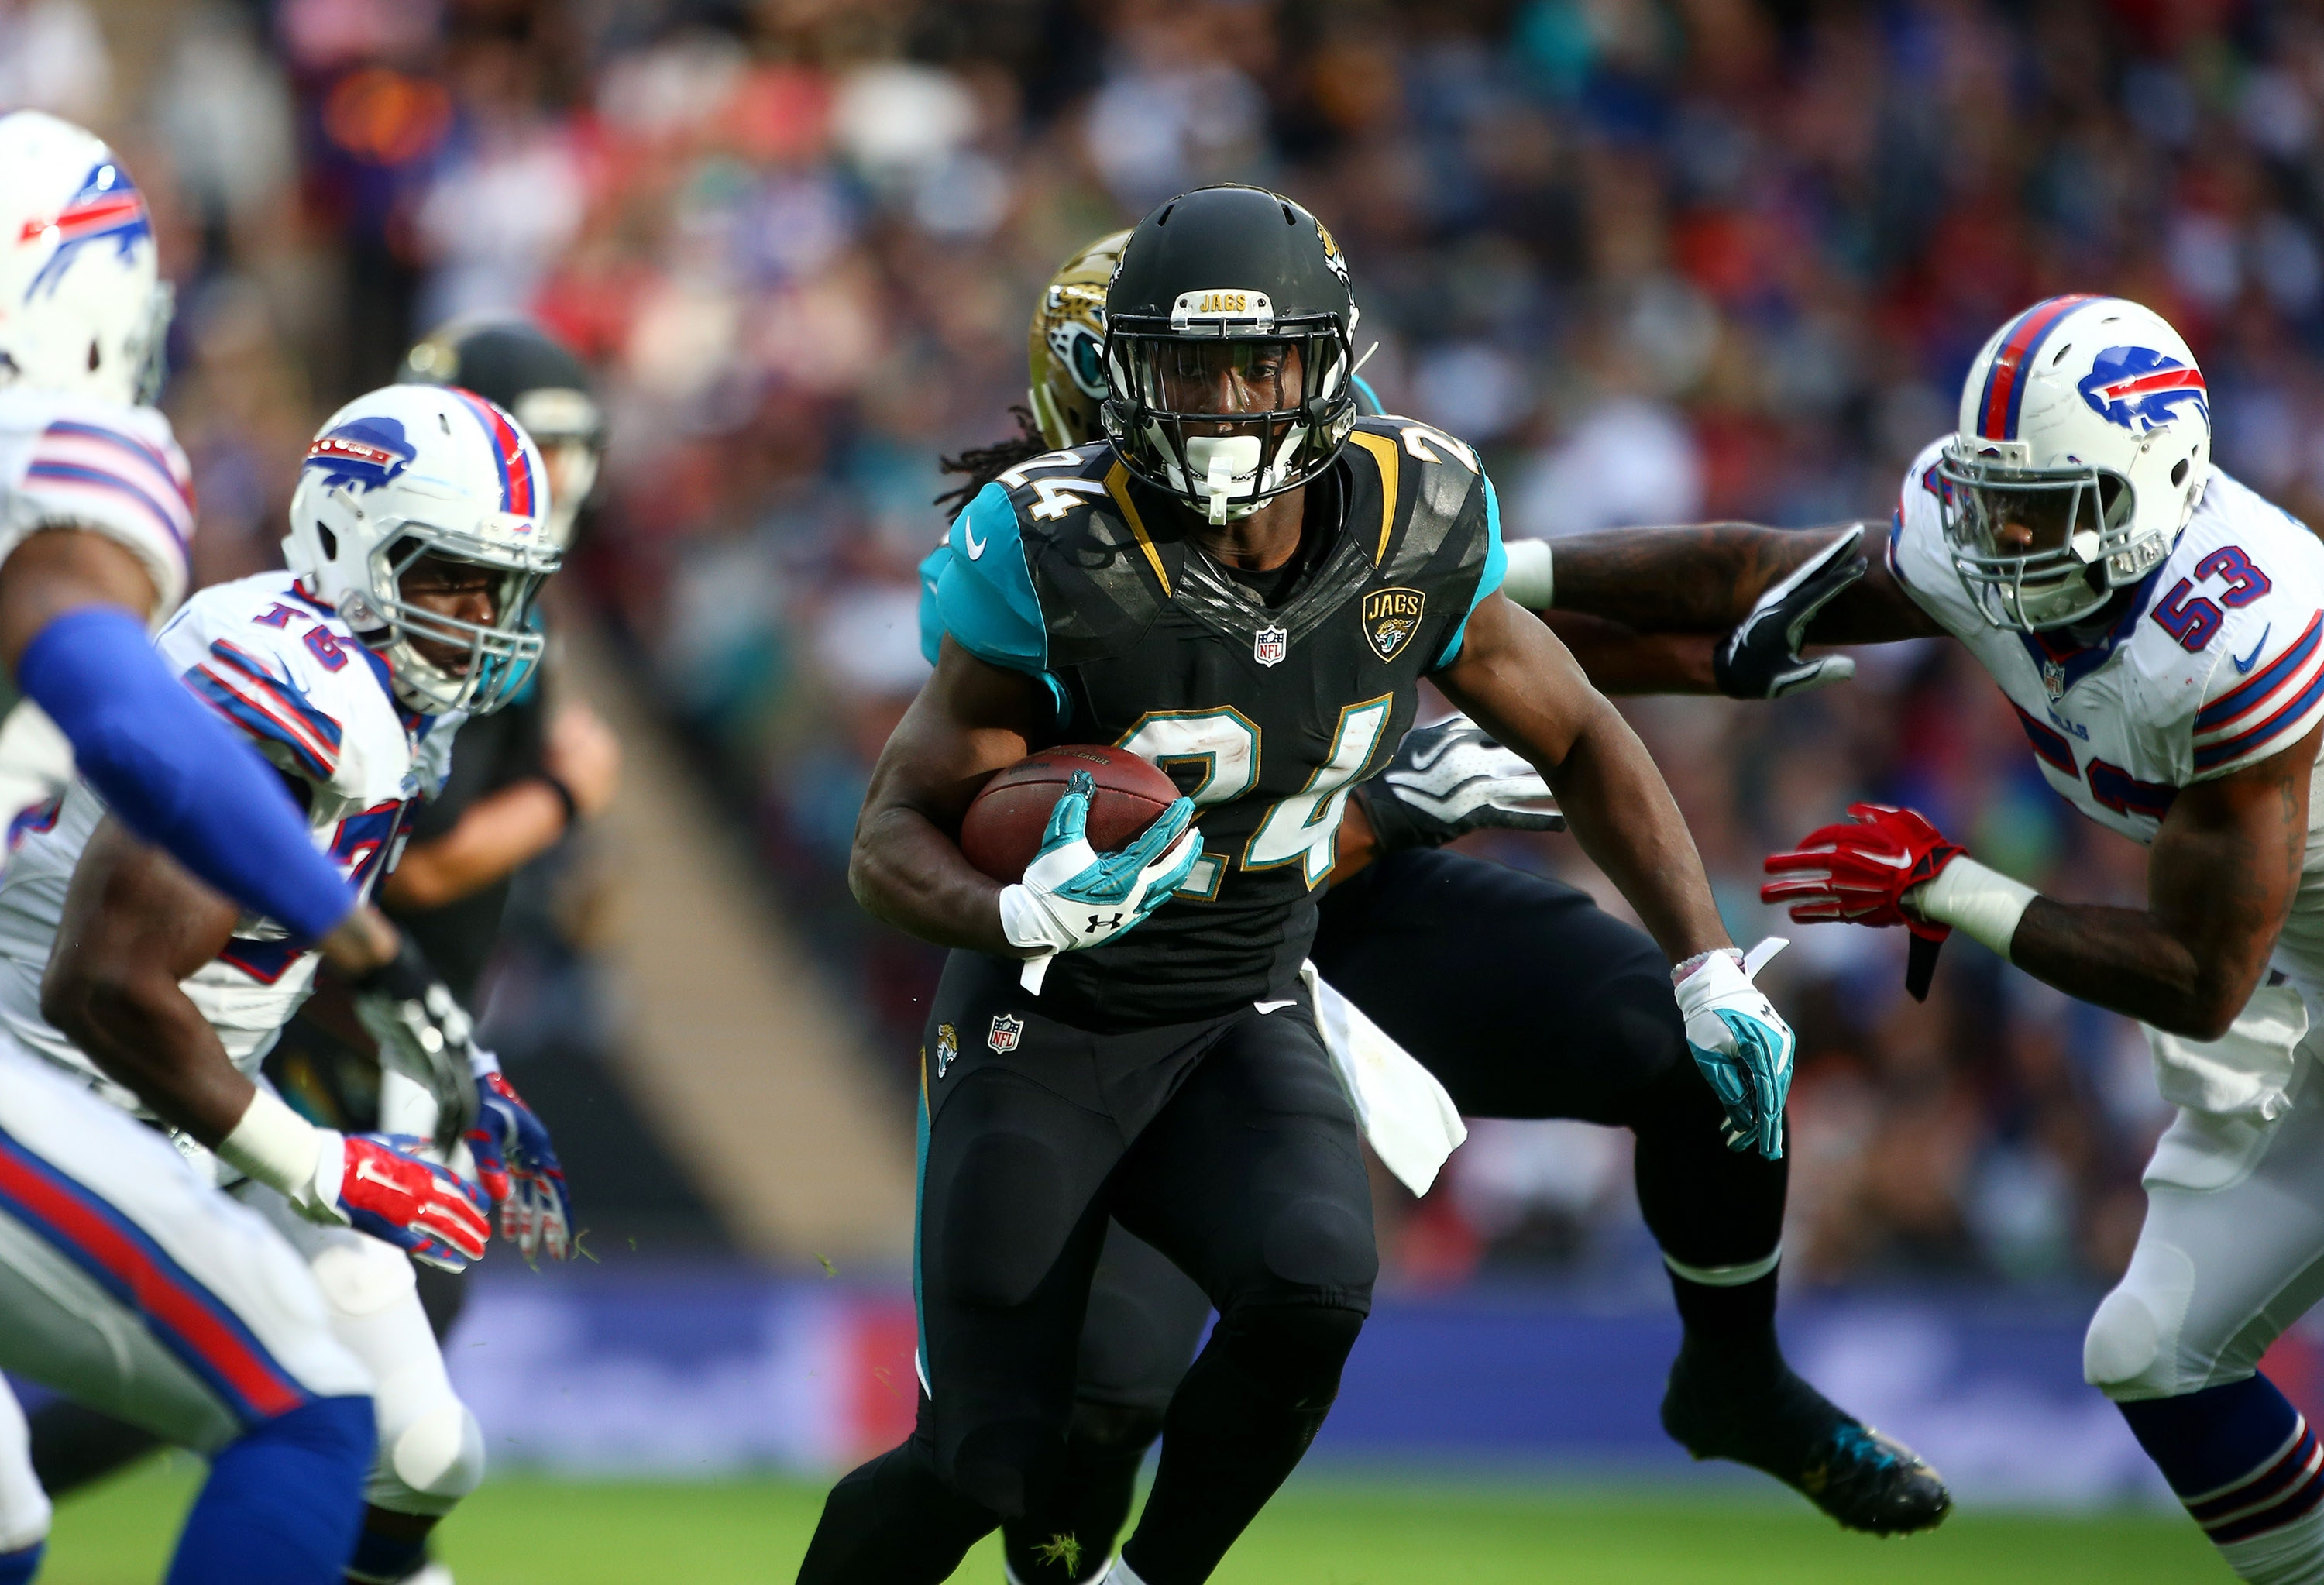 Getty Images  TJ Yeldon of the Jaguars ran for an average of 5.75 yards per carry against the Bills on Sunday in London.